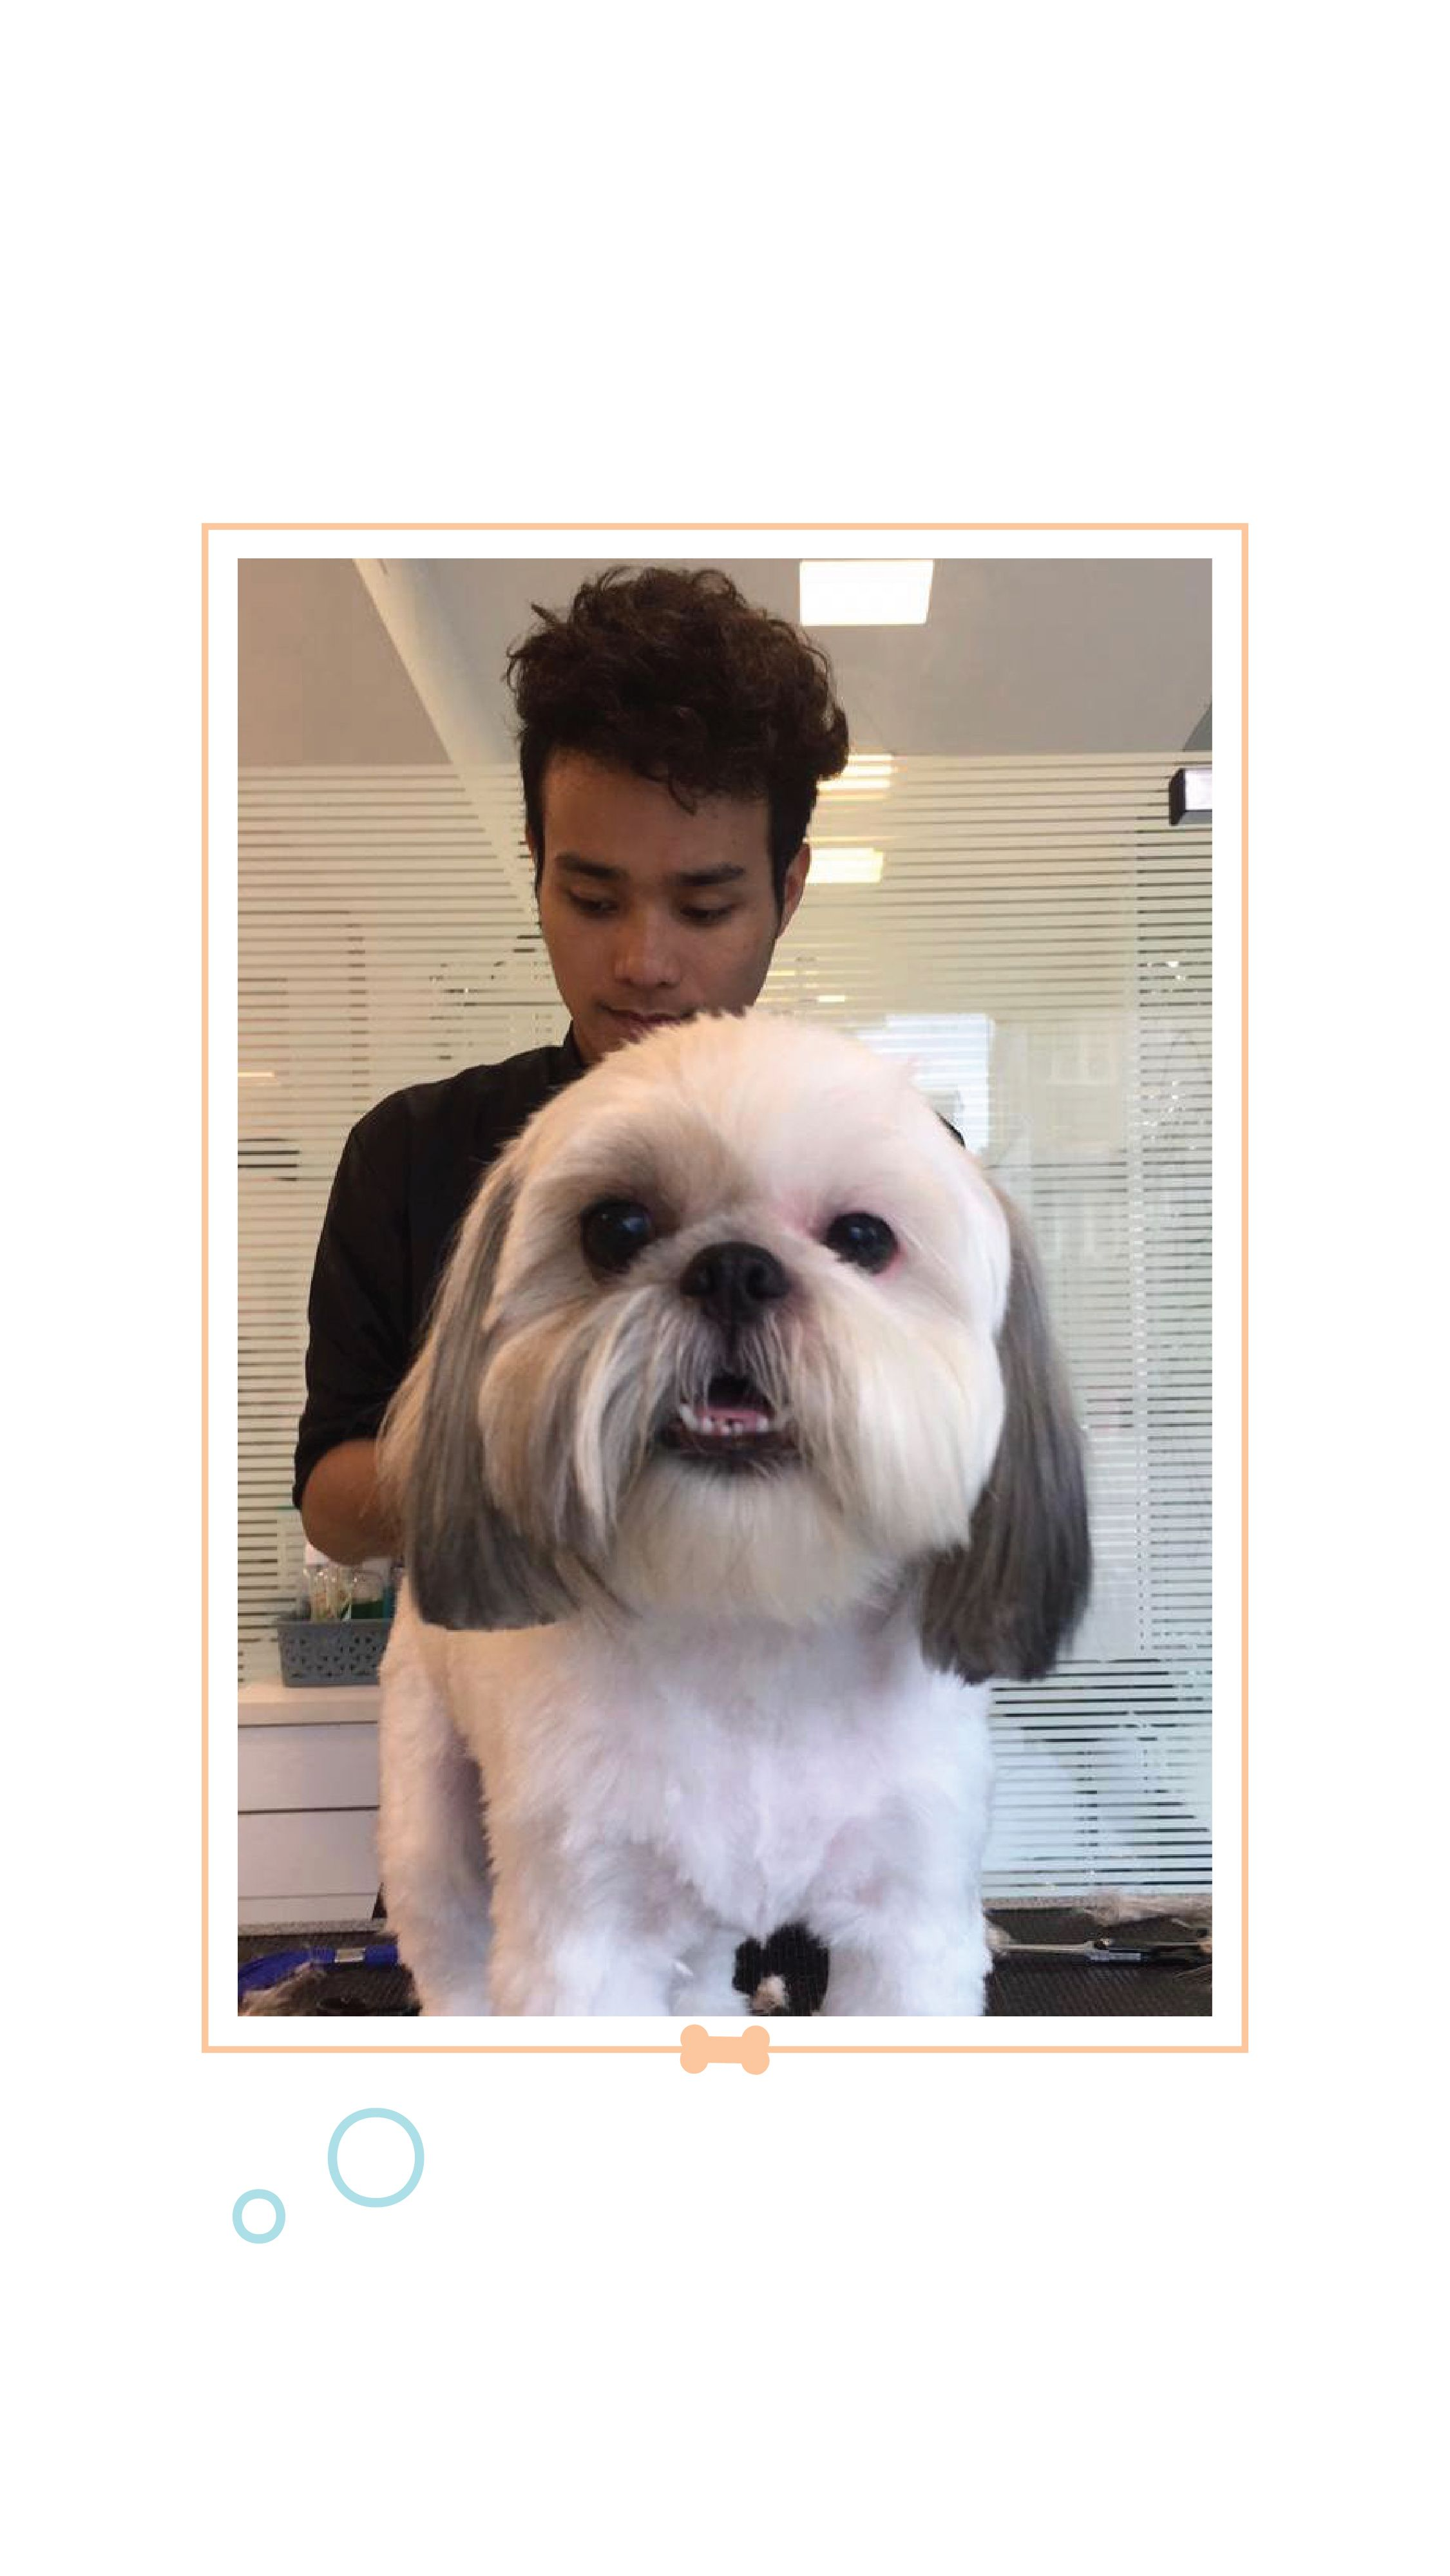 Avoid The Trouble Of A Messy Bath At Home And Bring Your Pet By For A Groom Gentle Shampoos And Conditioners Professional Grooming Tools Buy Pets Pets Dogs